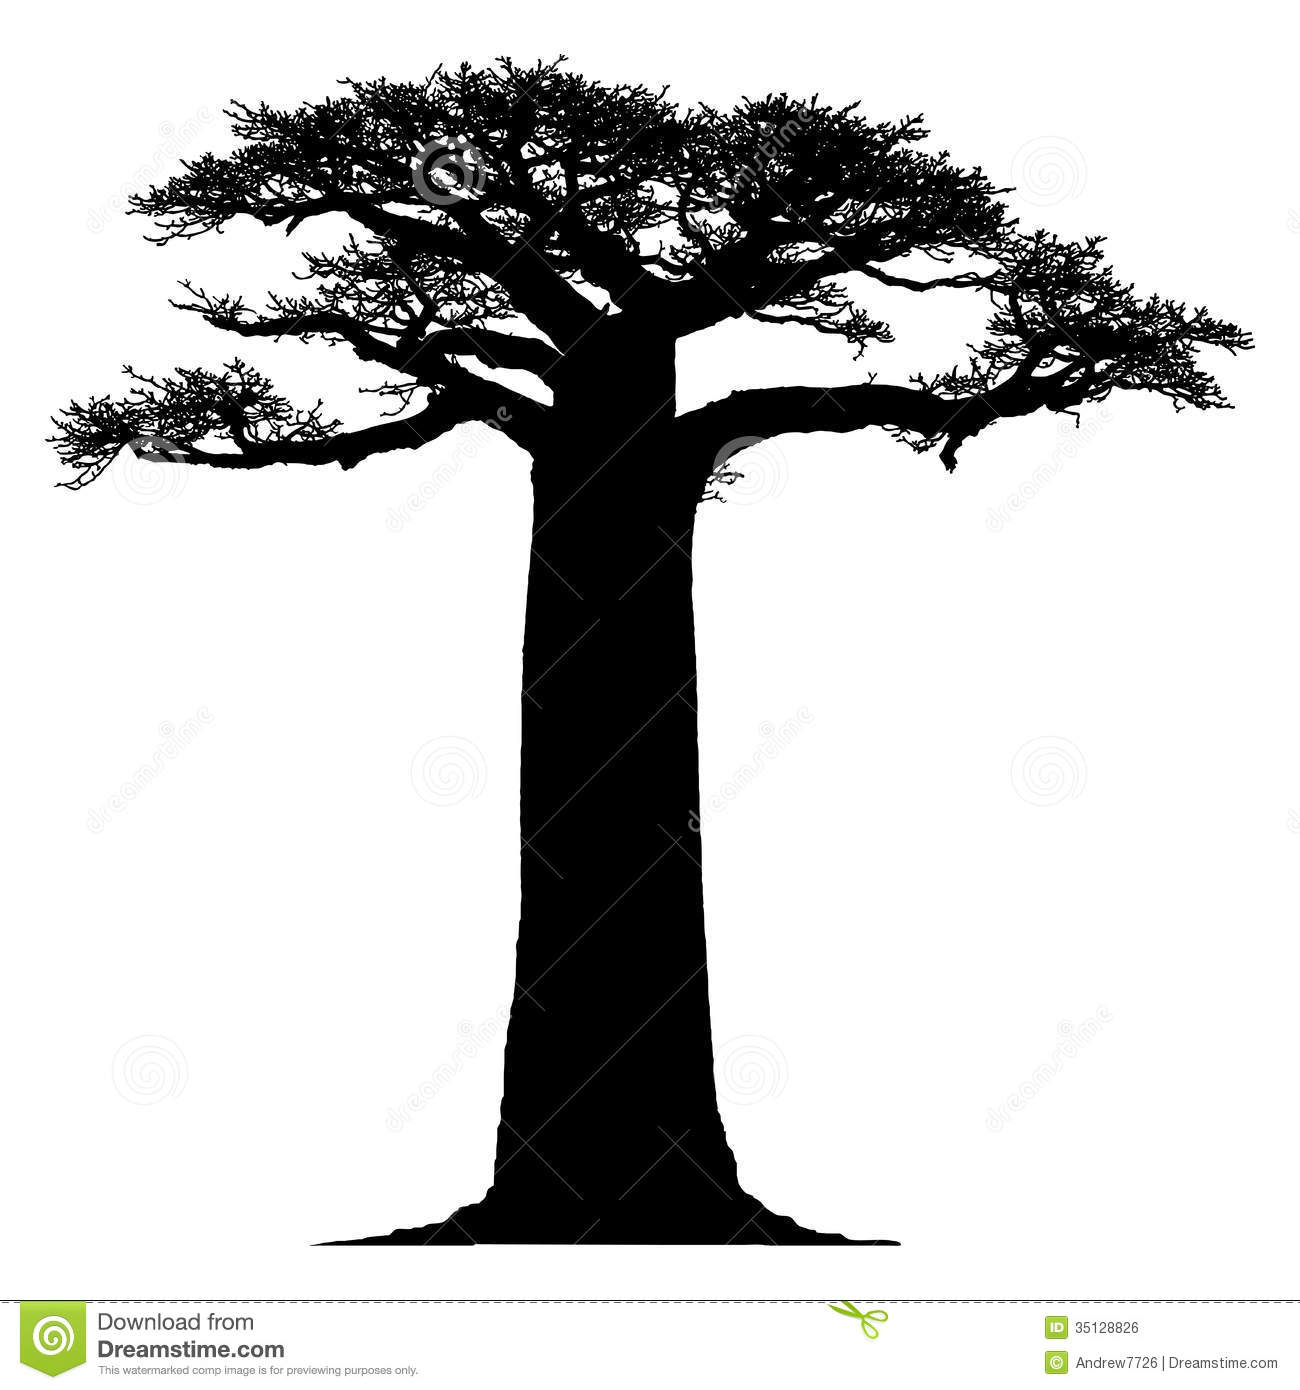 Silhouette Of A Baobab Tree Royalty Free Stock Image - Image: 35128826